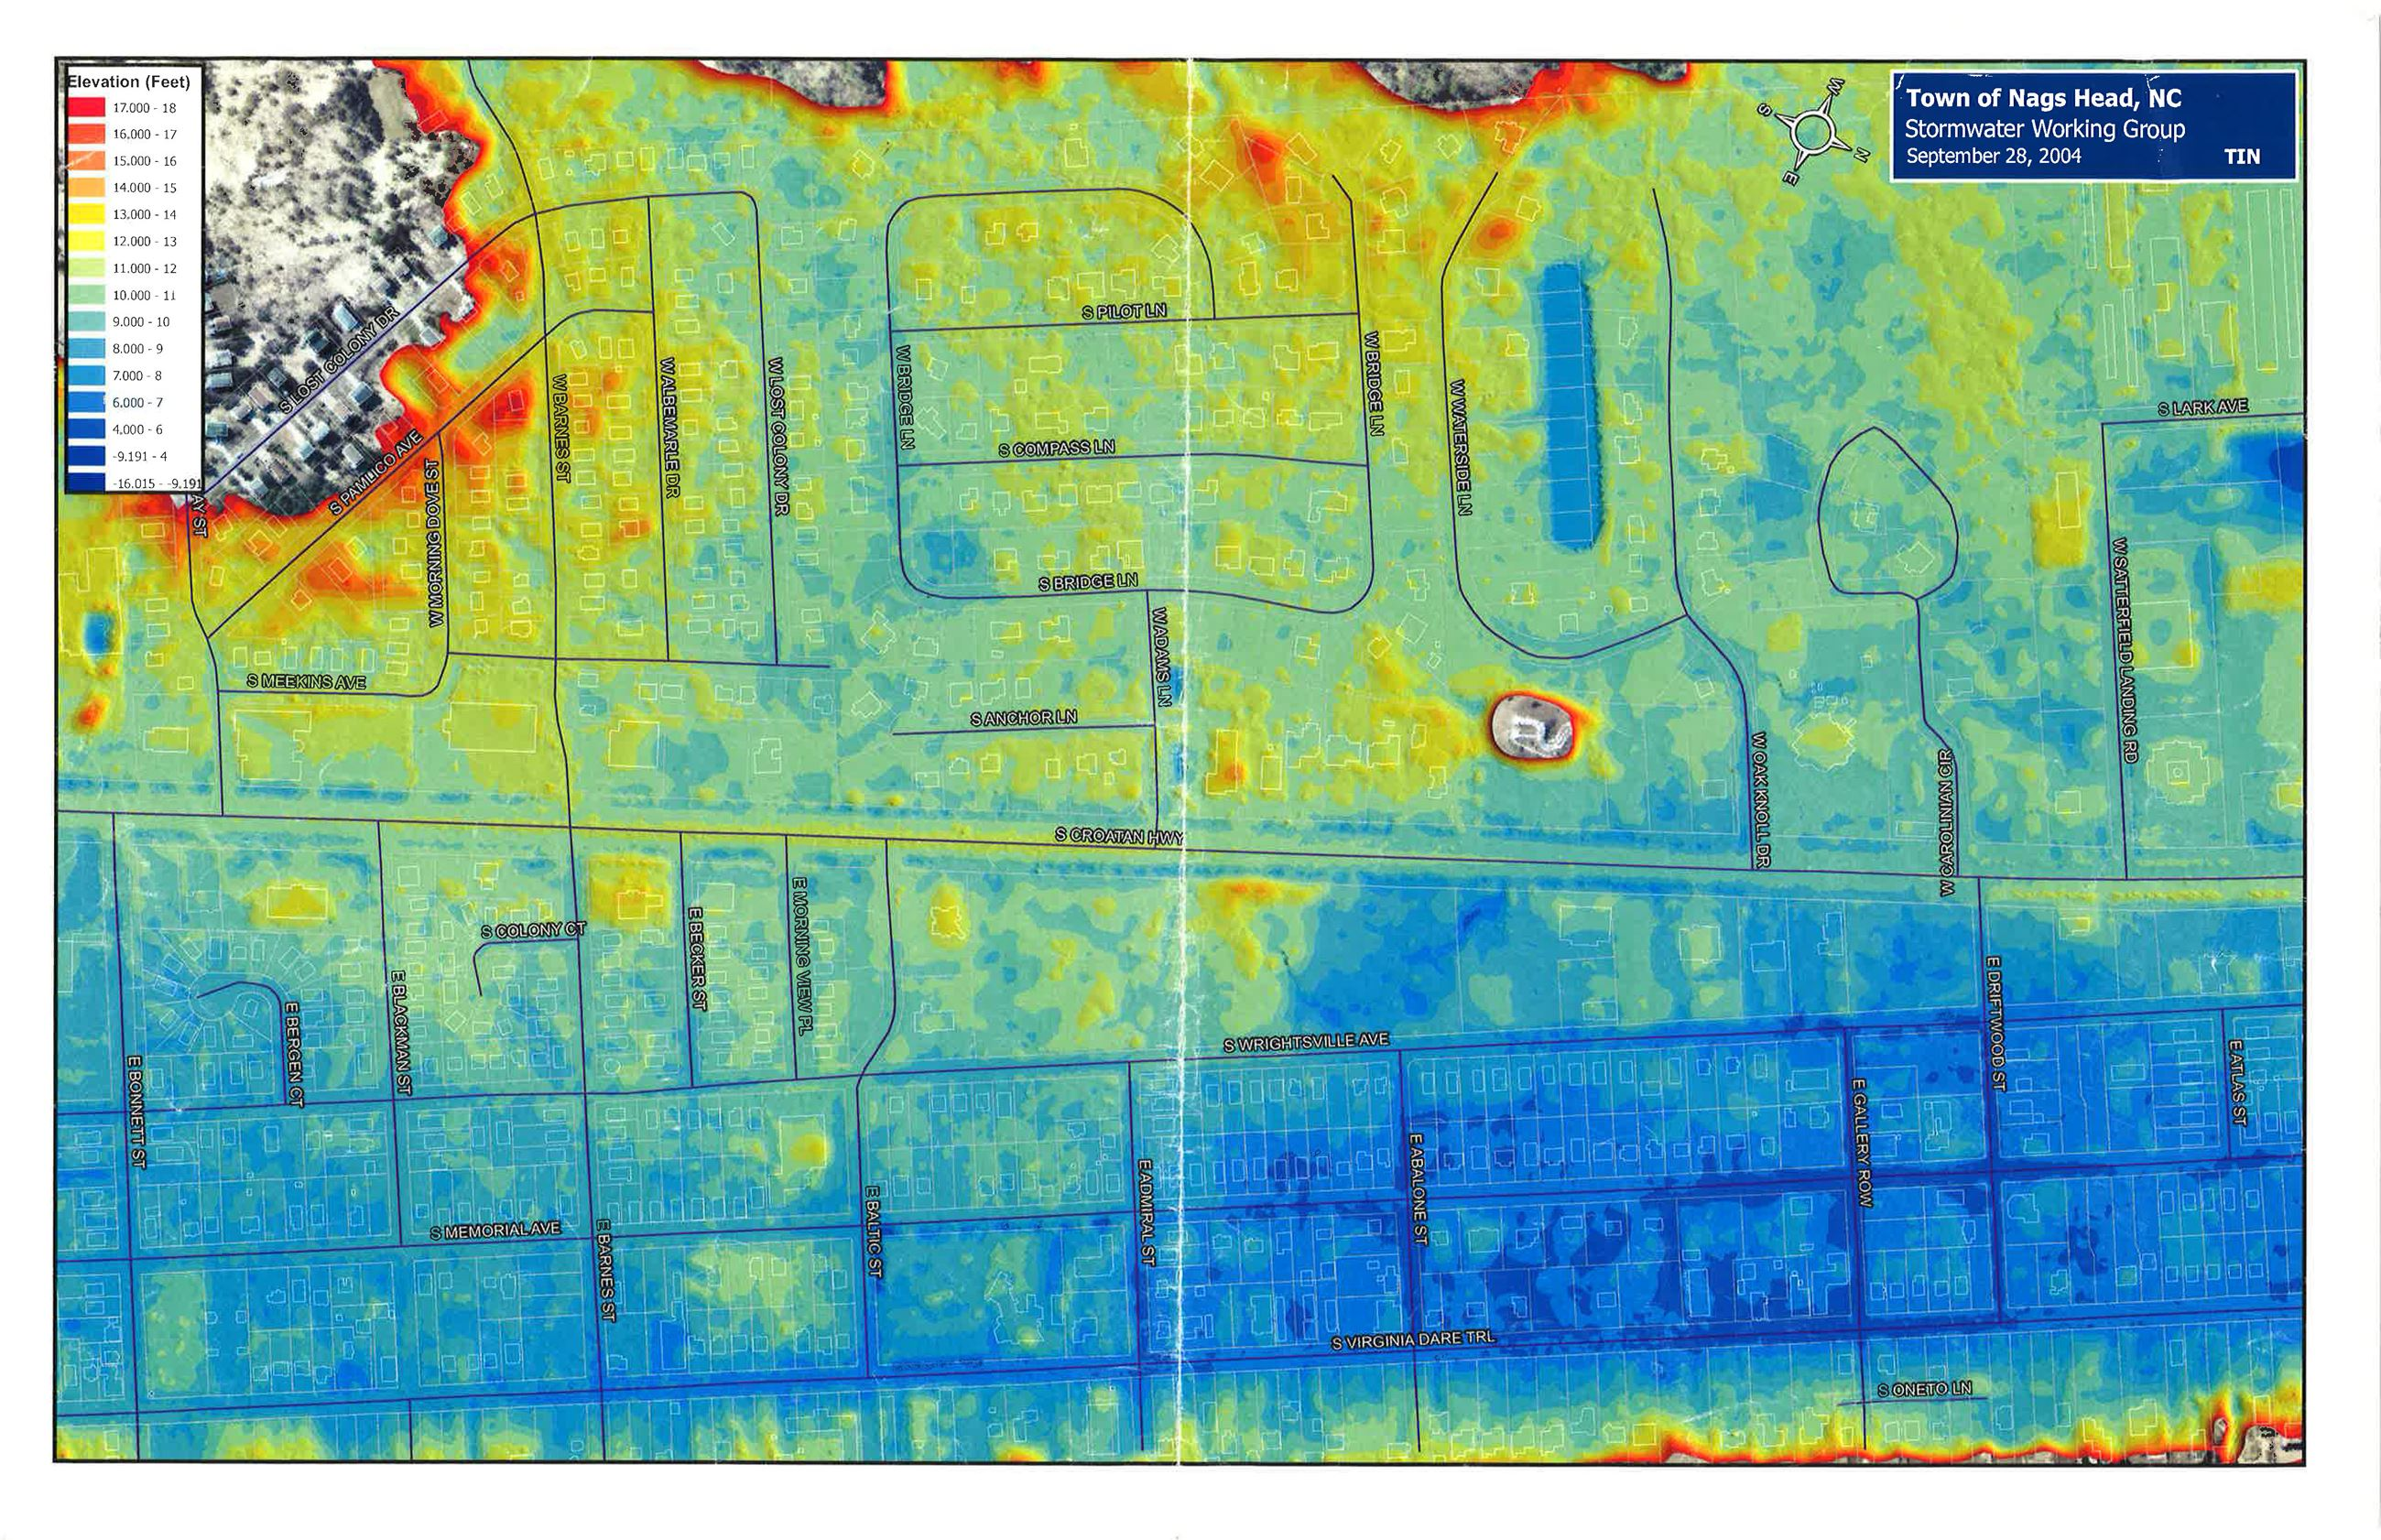 Digital Elevation Maps